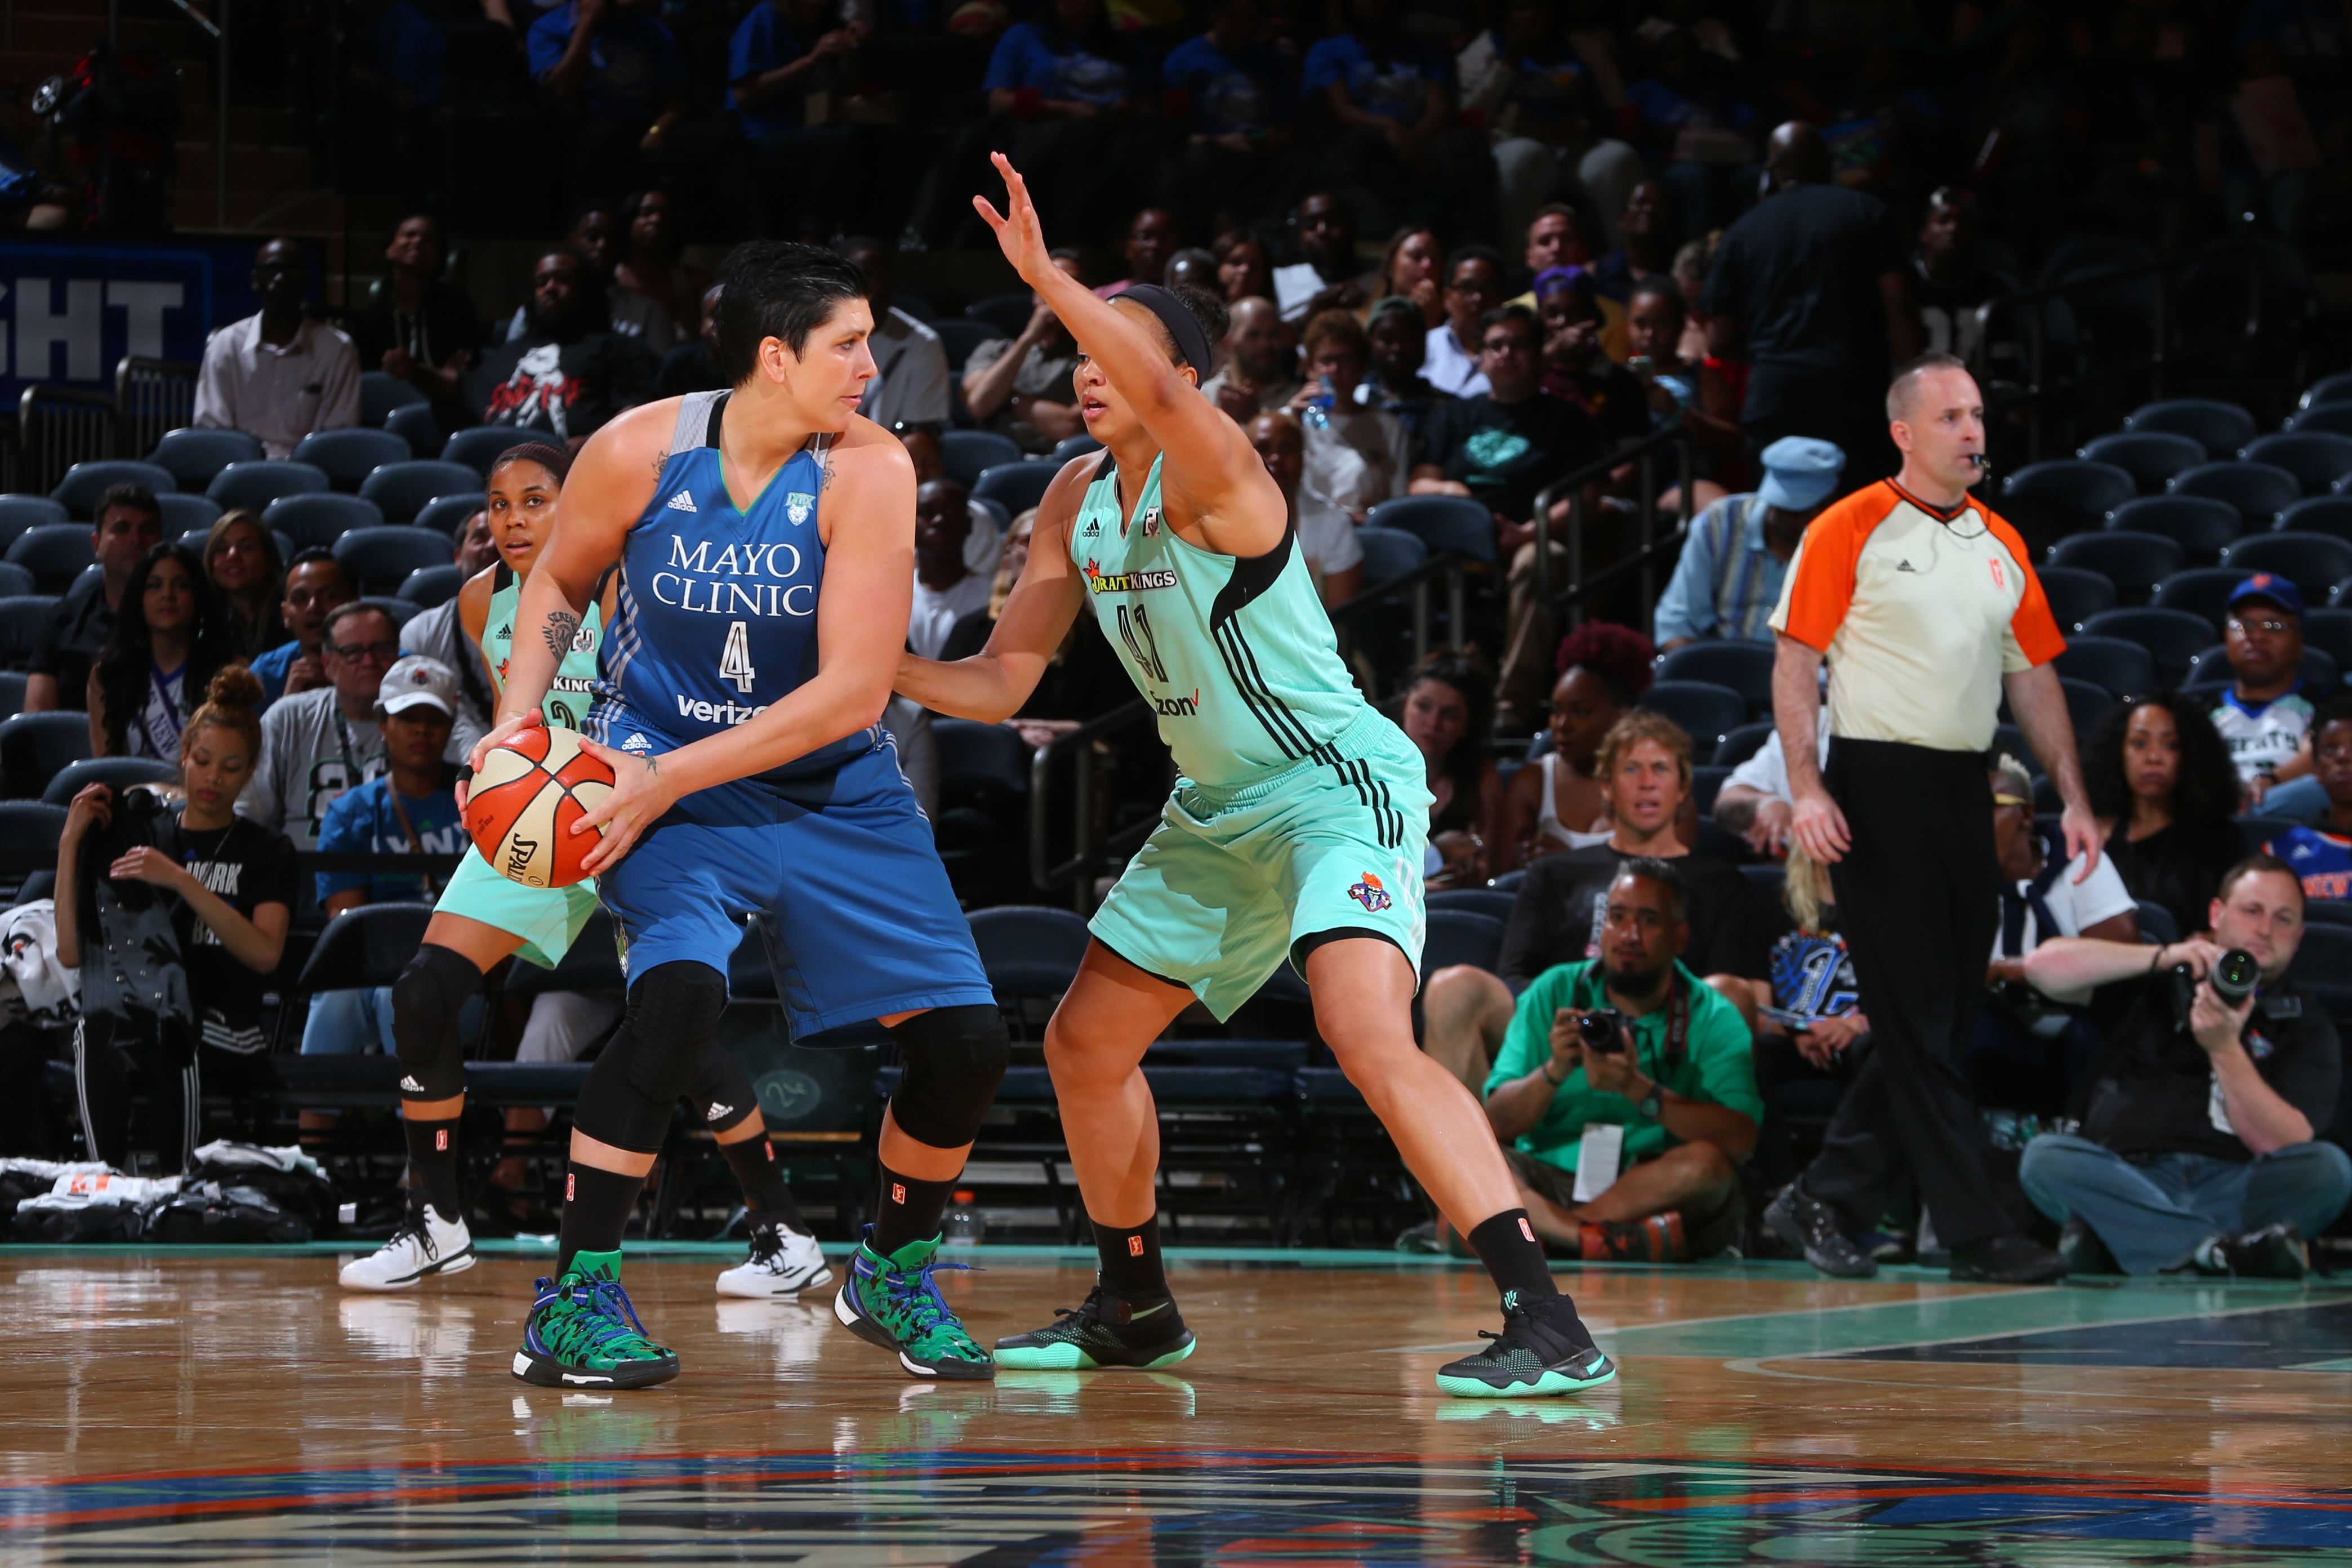 NEW YORK, NY - MAY 31: Janel McCarville #4 of the Minnesota Lynx defends the ball against Kiah Stokes #41 of the New York Liberty during the game on May 31, 2016 at Madison Square Garden in New York, New York. NOTE TO USER: User expressly acknowledges and agrees that, by downloading and or using this Photograph, user is consenting to the terms and conditions of the Getty Images License Agreement. Mandatory Copyright Notice: Copyright 2016 NBAE (Photo by Mike Stobe/NBAE via Getty Images)